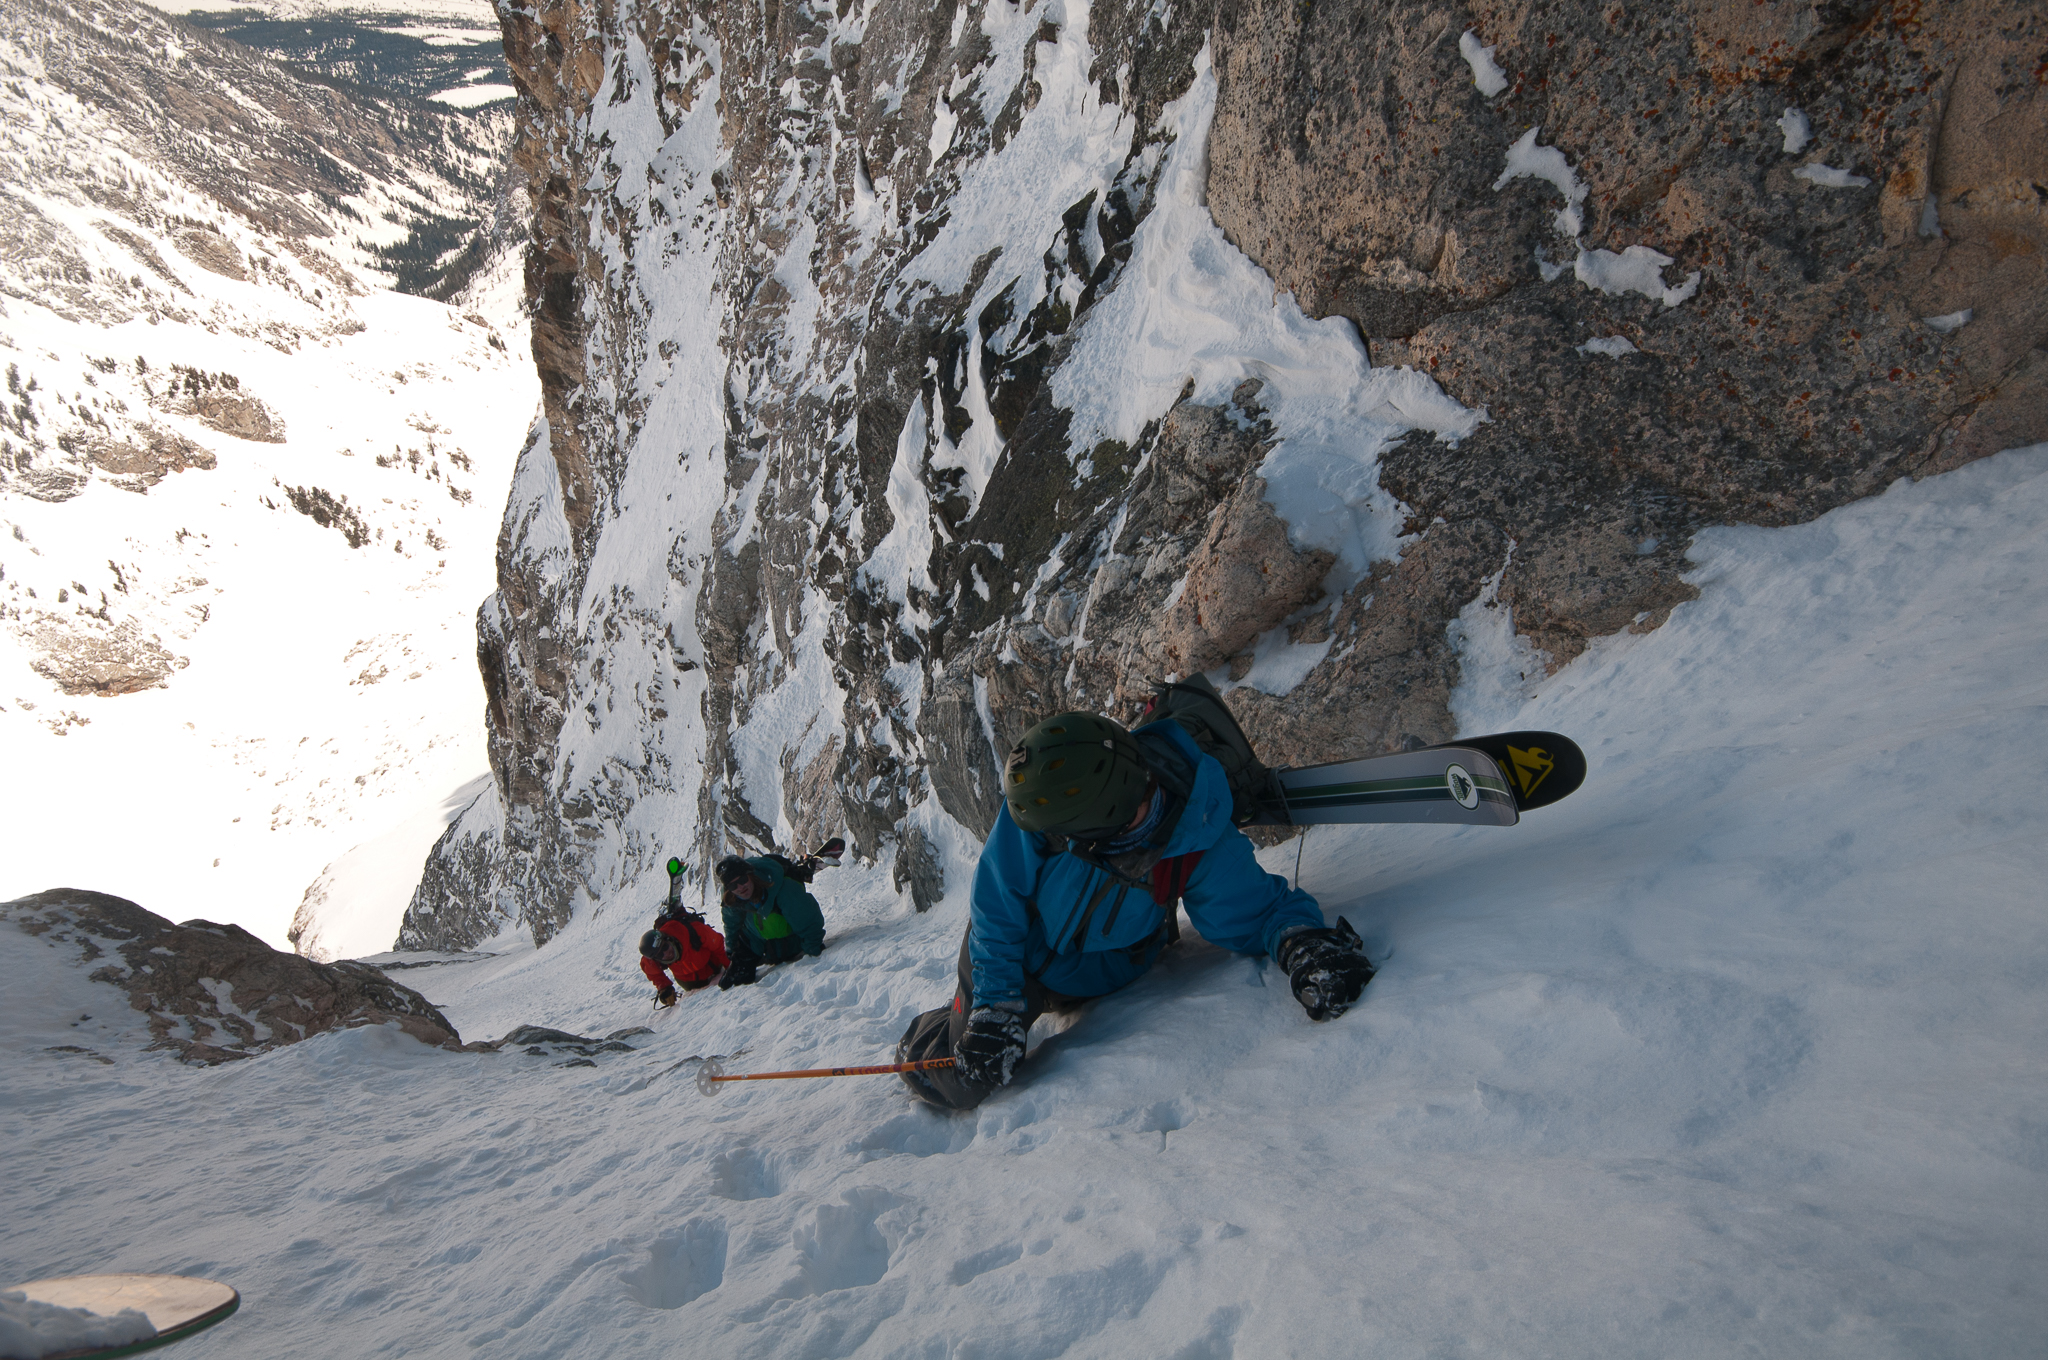 Calm and reliable, Figs quietly documents elite mountaineering teams across the globe. Here, he points his lens down a spicy line in the Tetons. PHOTO: Chris Figenshau